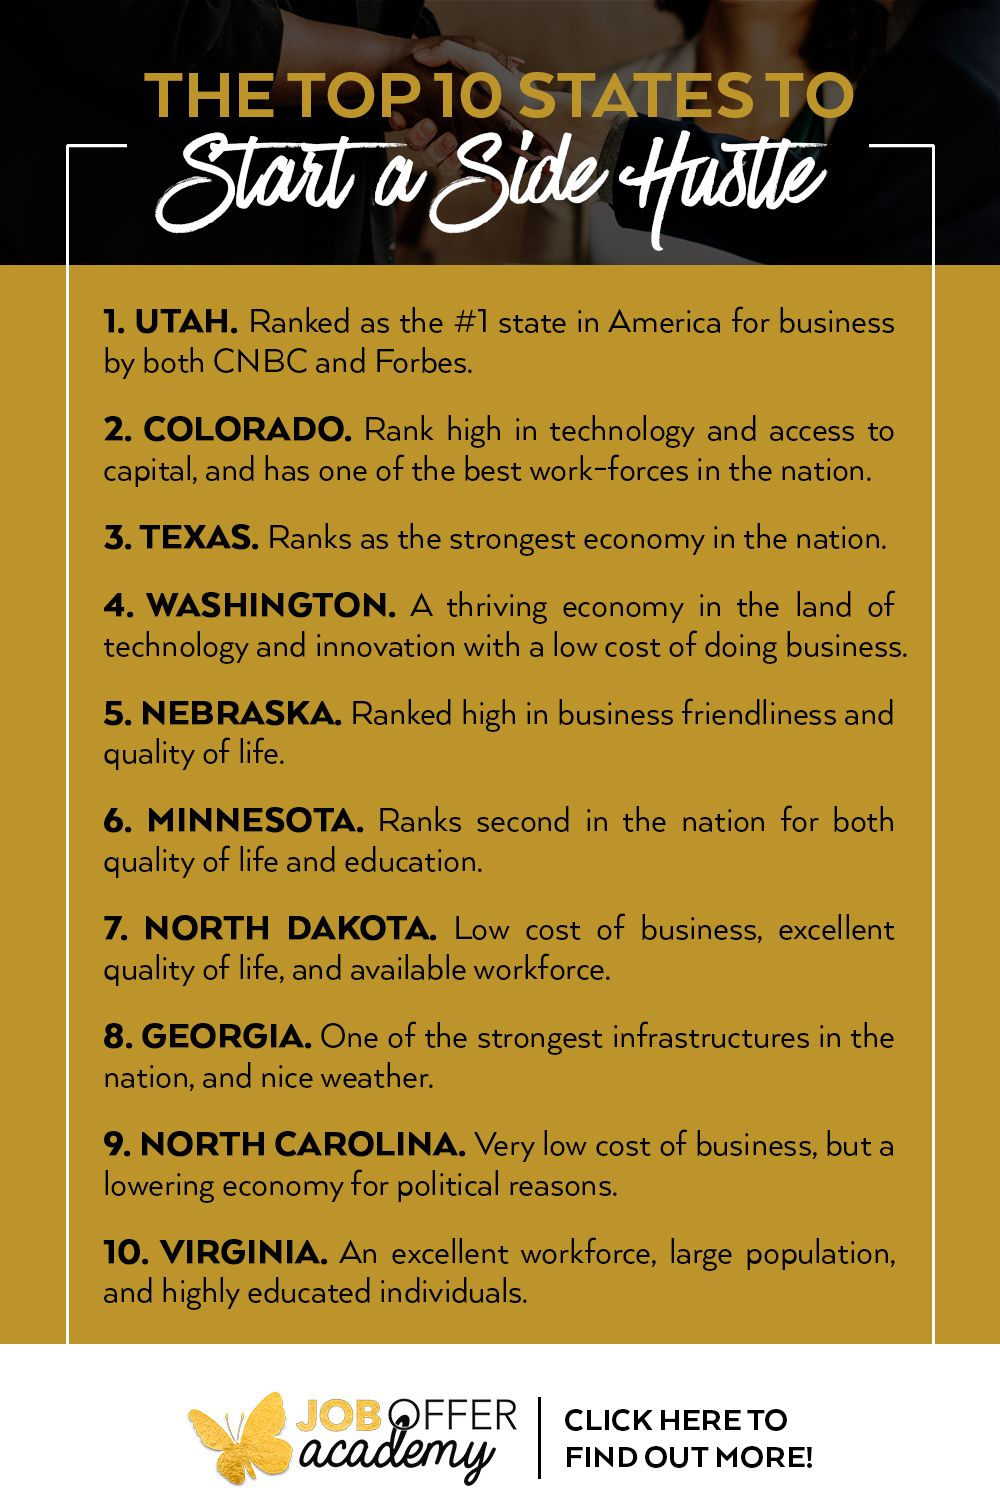 The Top 10 States To Start A Side Hustle Side Hustle Resume Advice Starting A Business